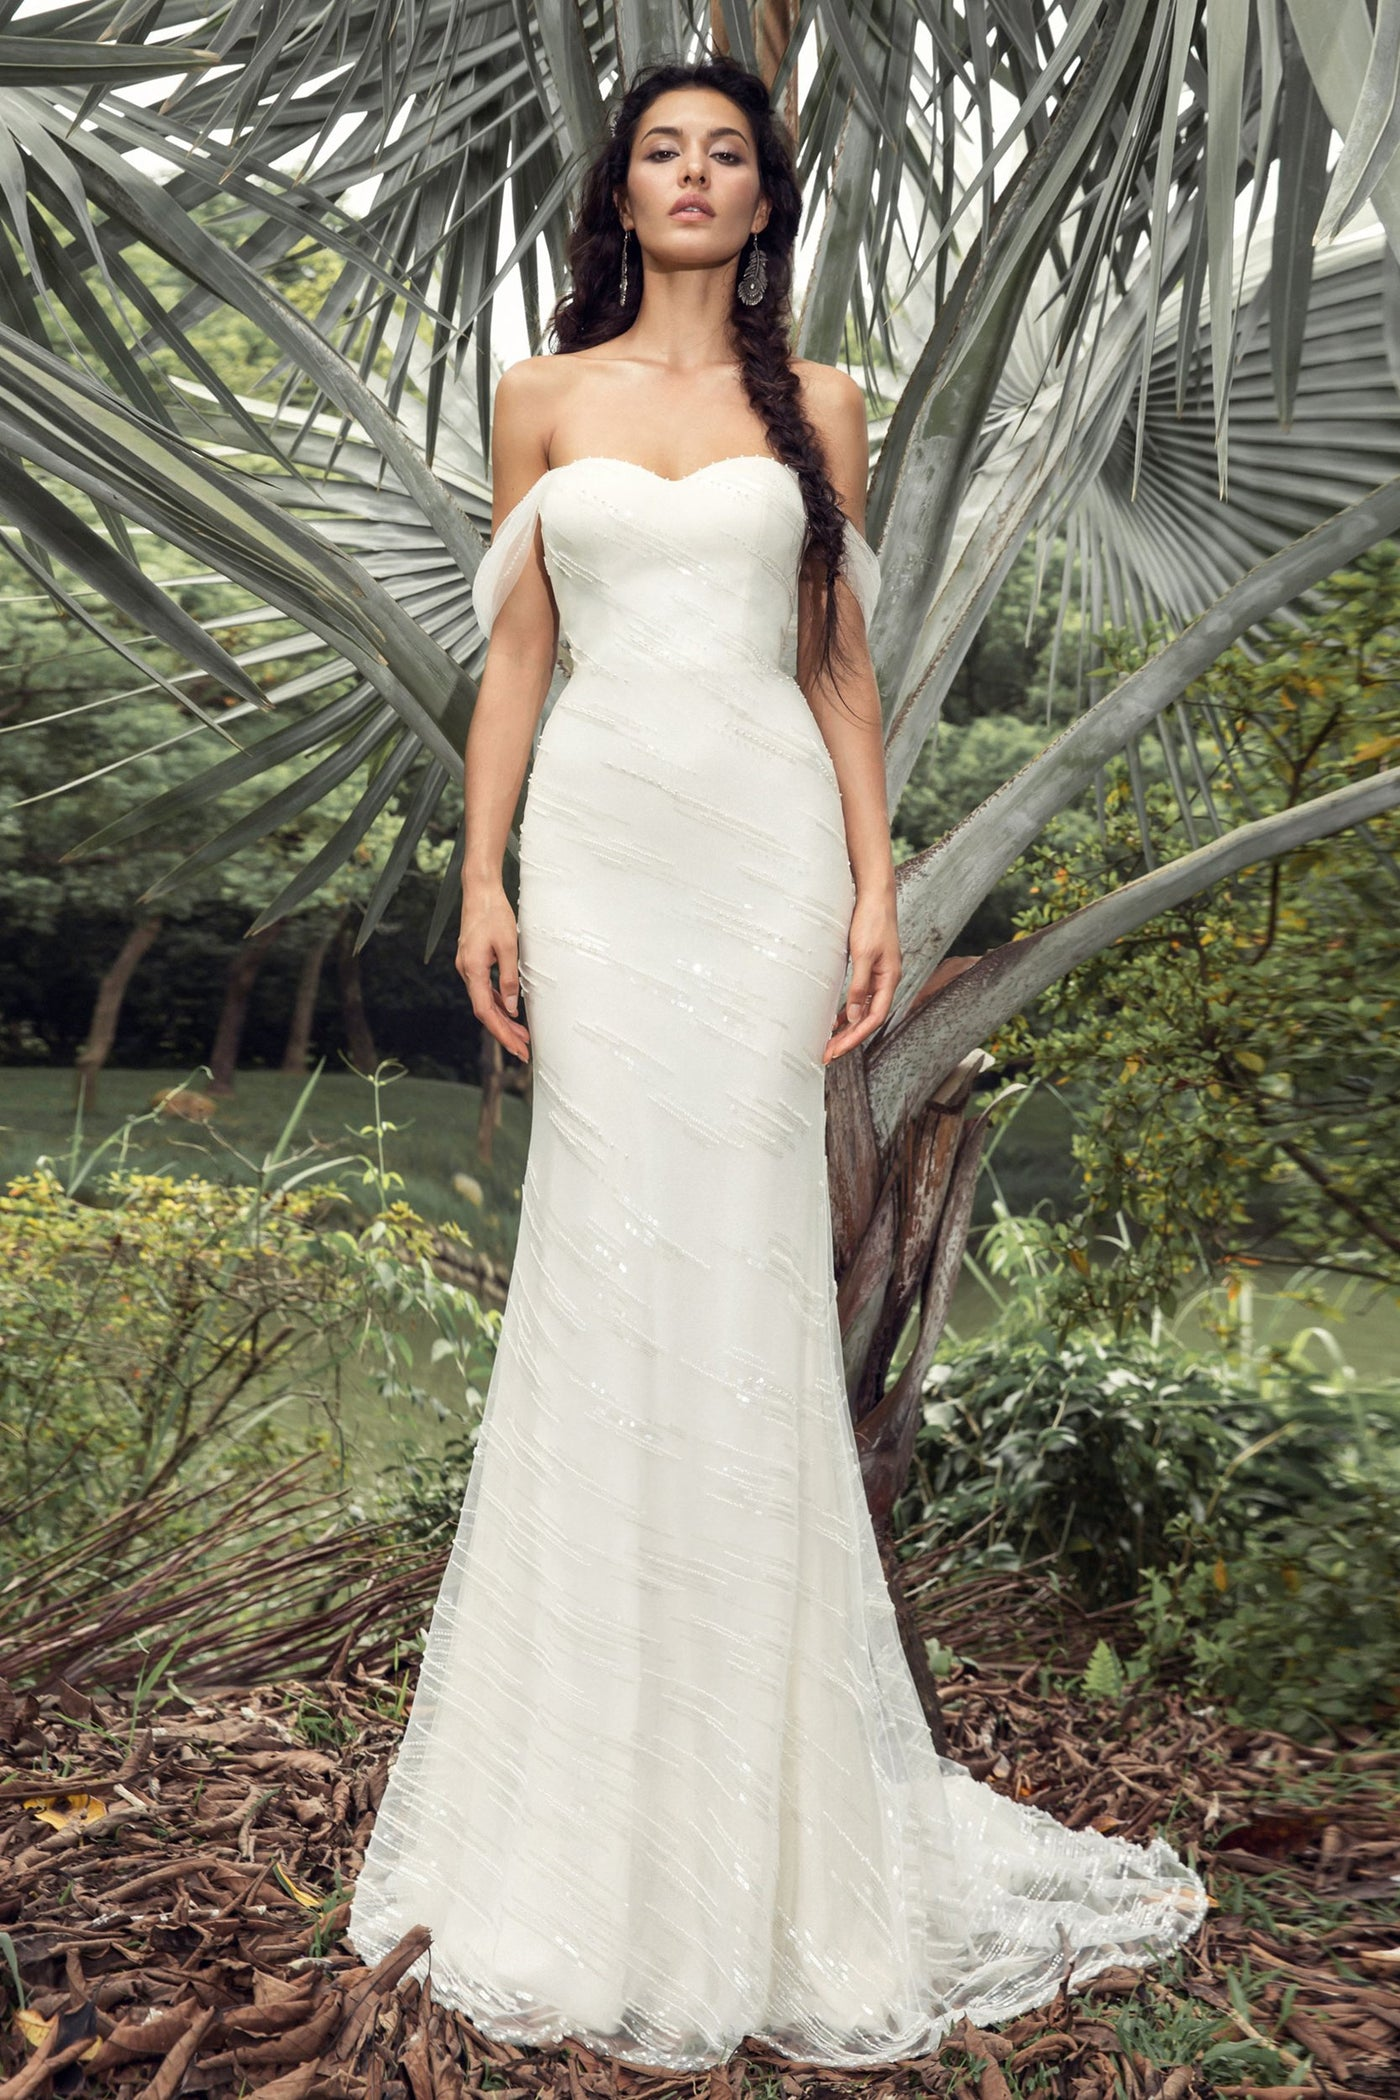 Mia - Sample Gown, Online Sample Sale, Chic Nostalgia - Sample Gown - Eternal Bridal